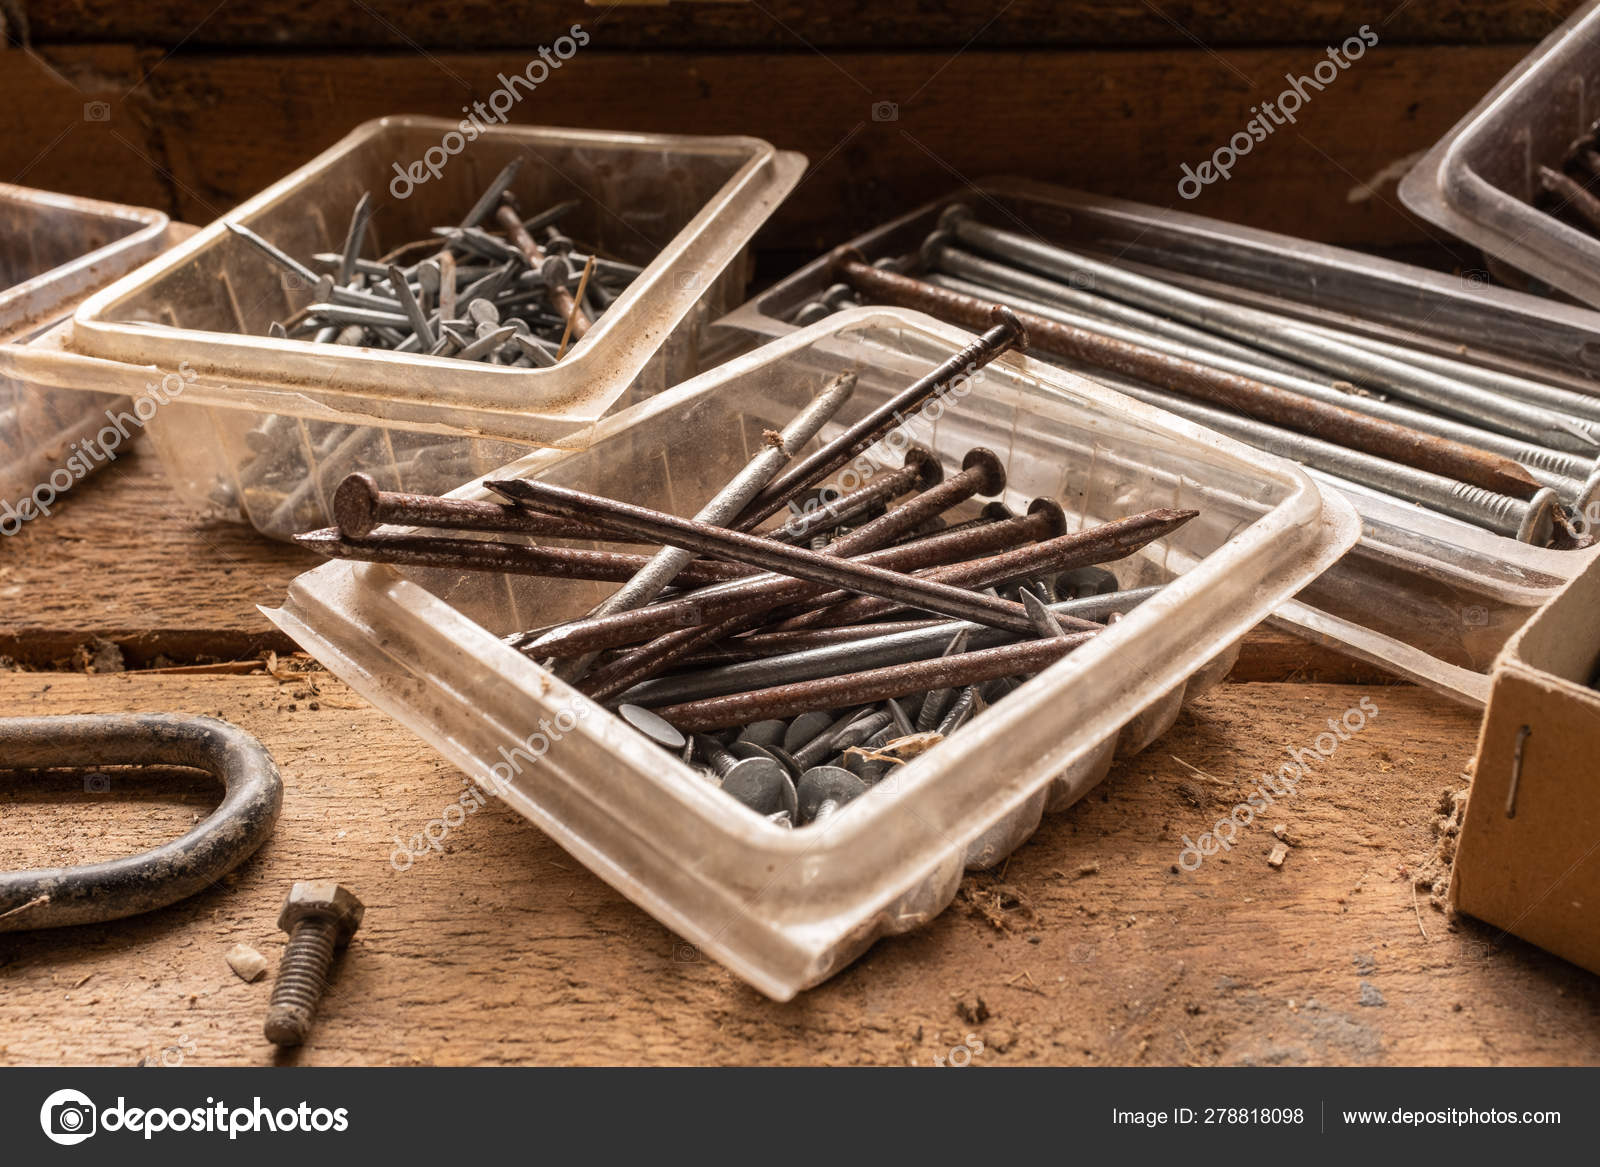 Brilliant A Close Up Of An Assortment Of Nails And Screws On A Wooden Squirreltailoven Fun Painted Chair Ideas Images Squirreltailovenorg